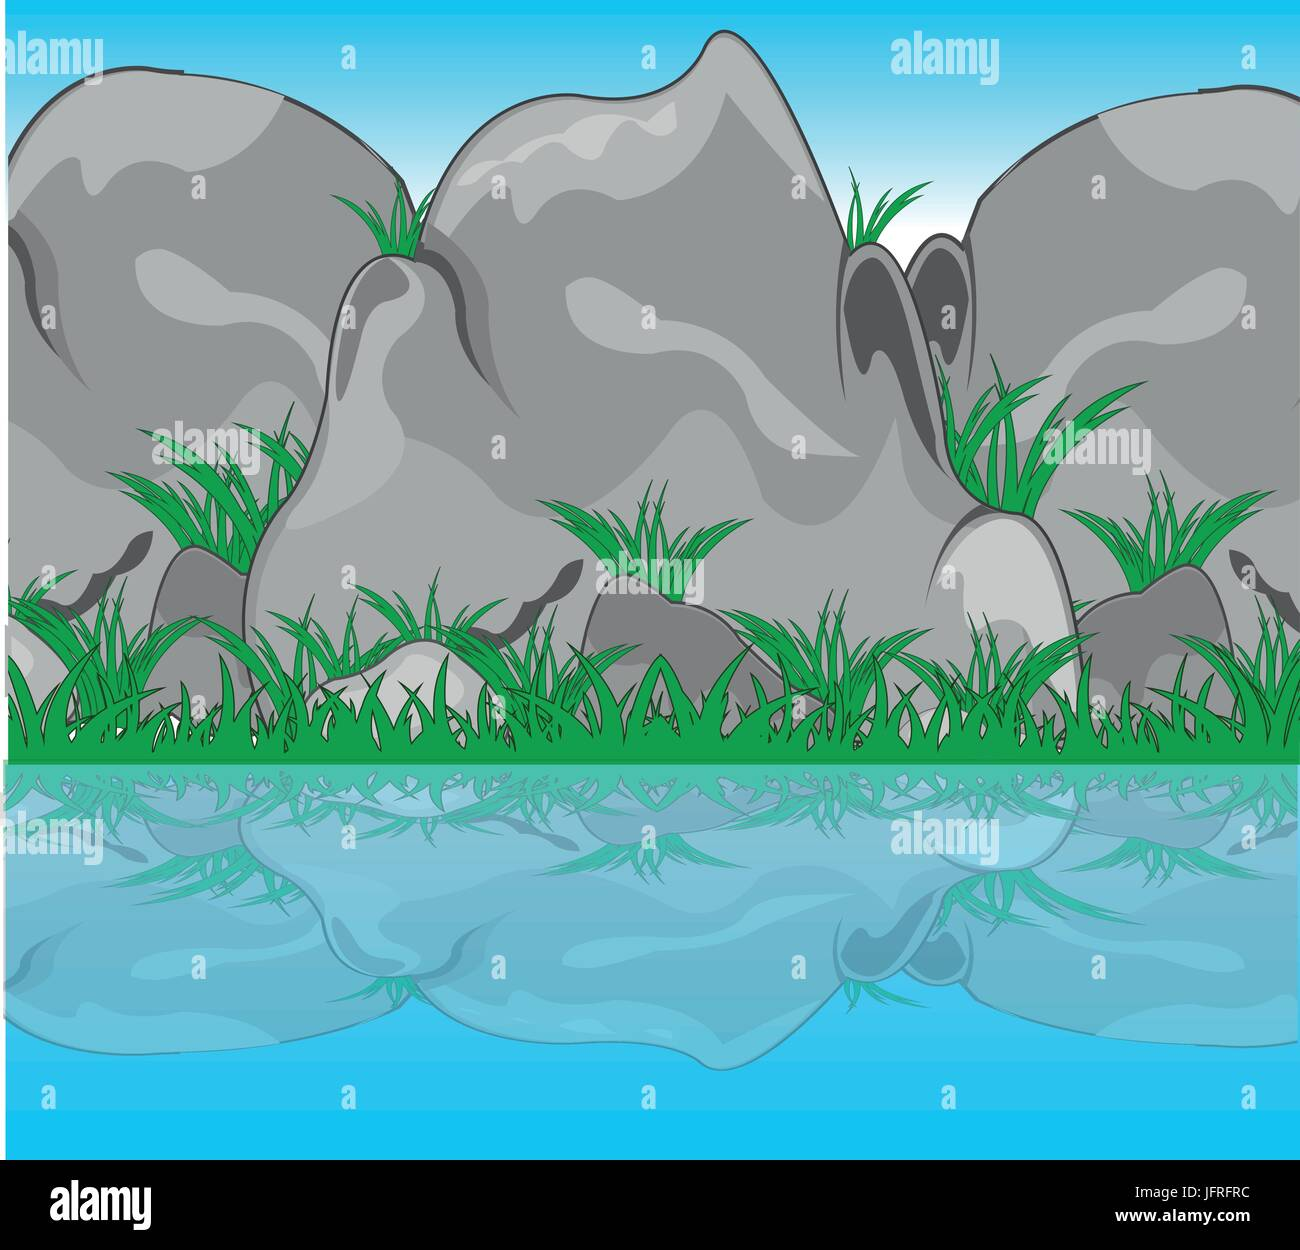 Stone reflection in water - Stock Vector